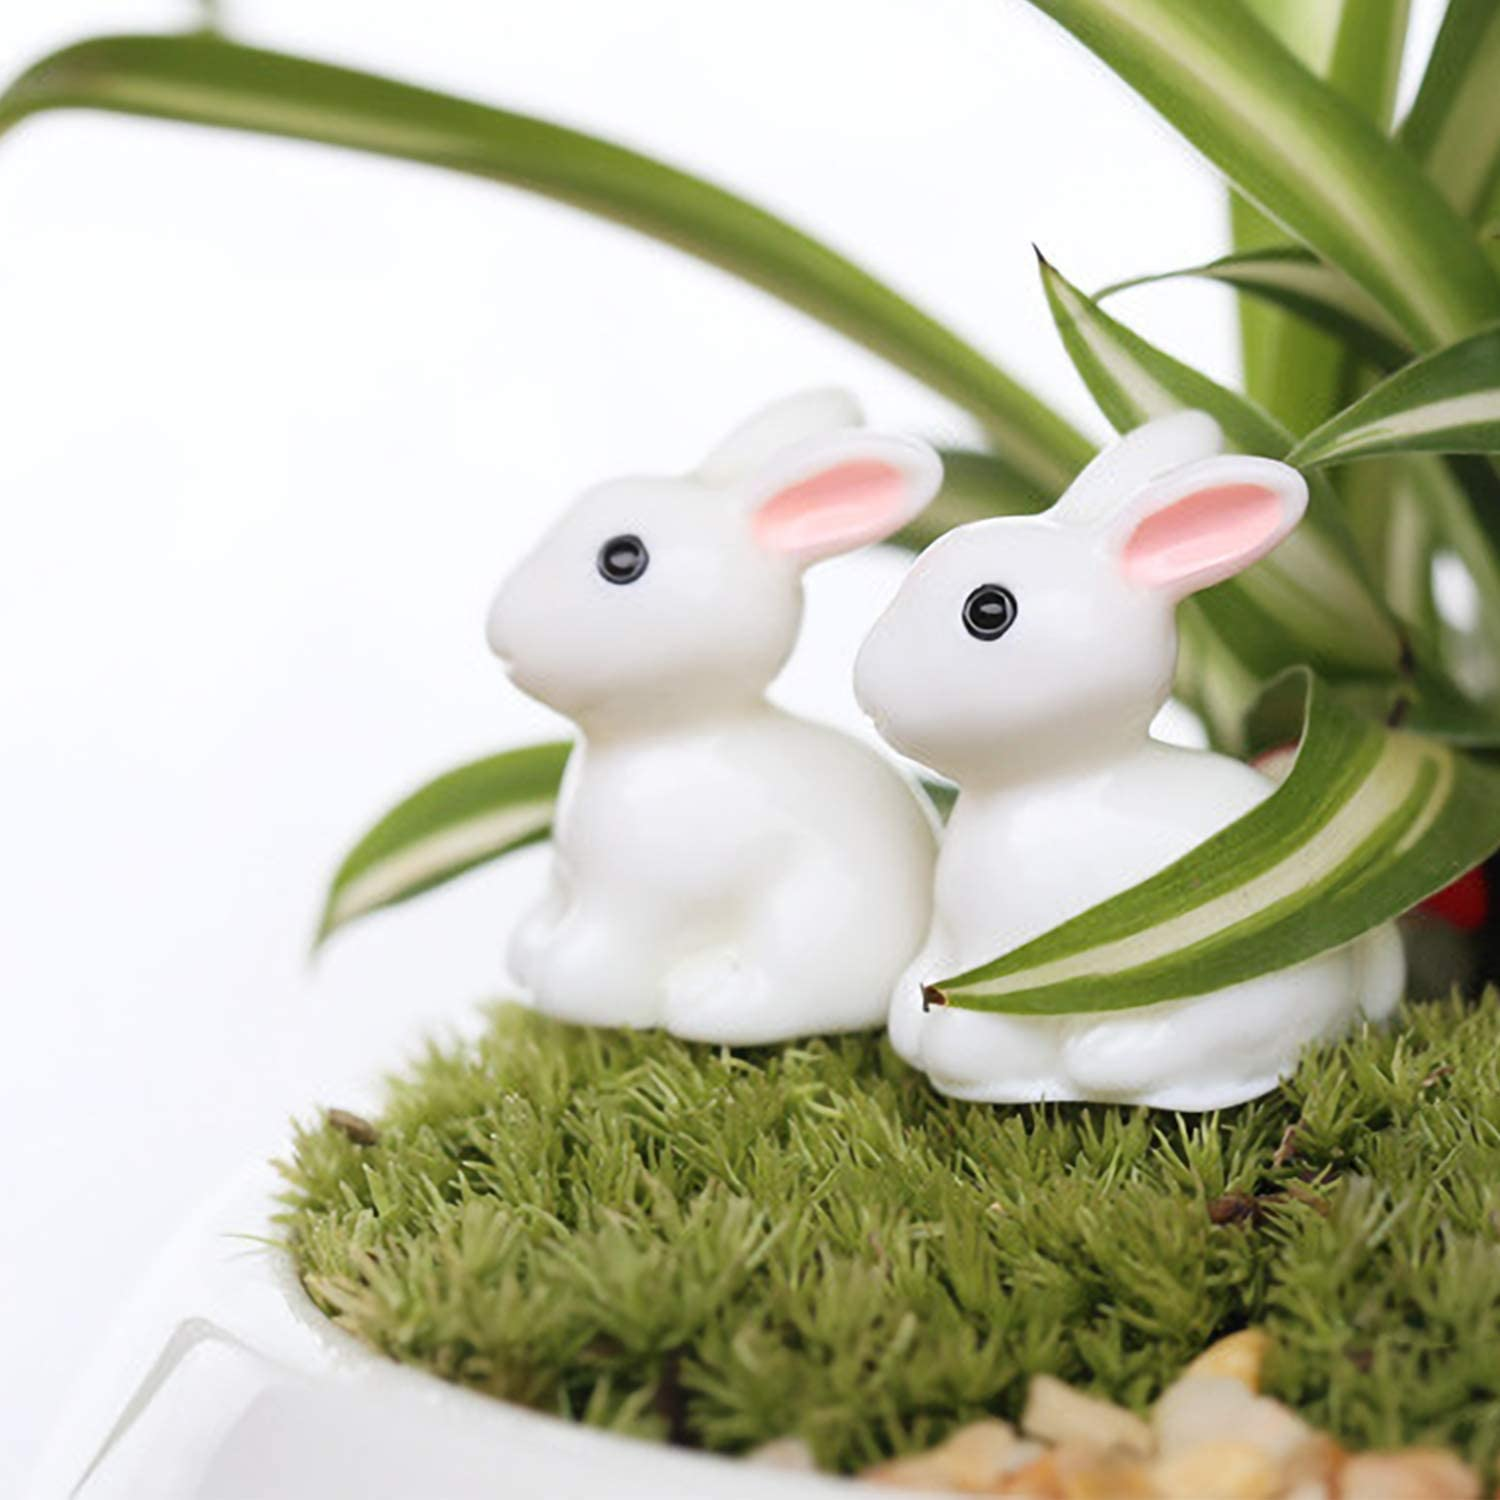 Miniature Garden Ornaments Kit,50 Pack Mini Animals Rabbits Fairy Garden Accessories for Moss Landscape DIY Terrarium Crafts